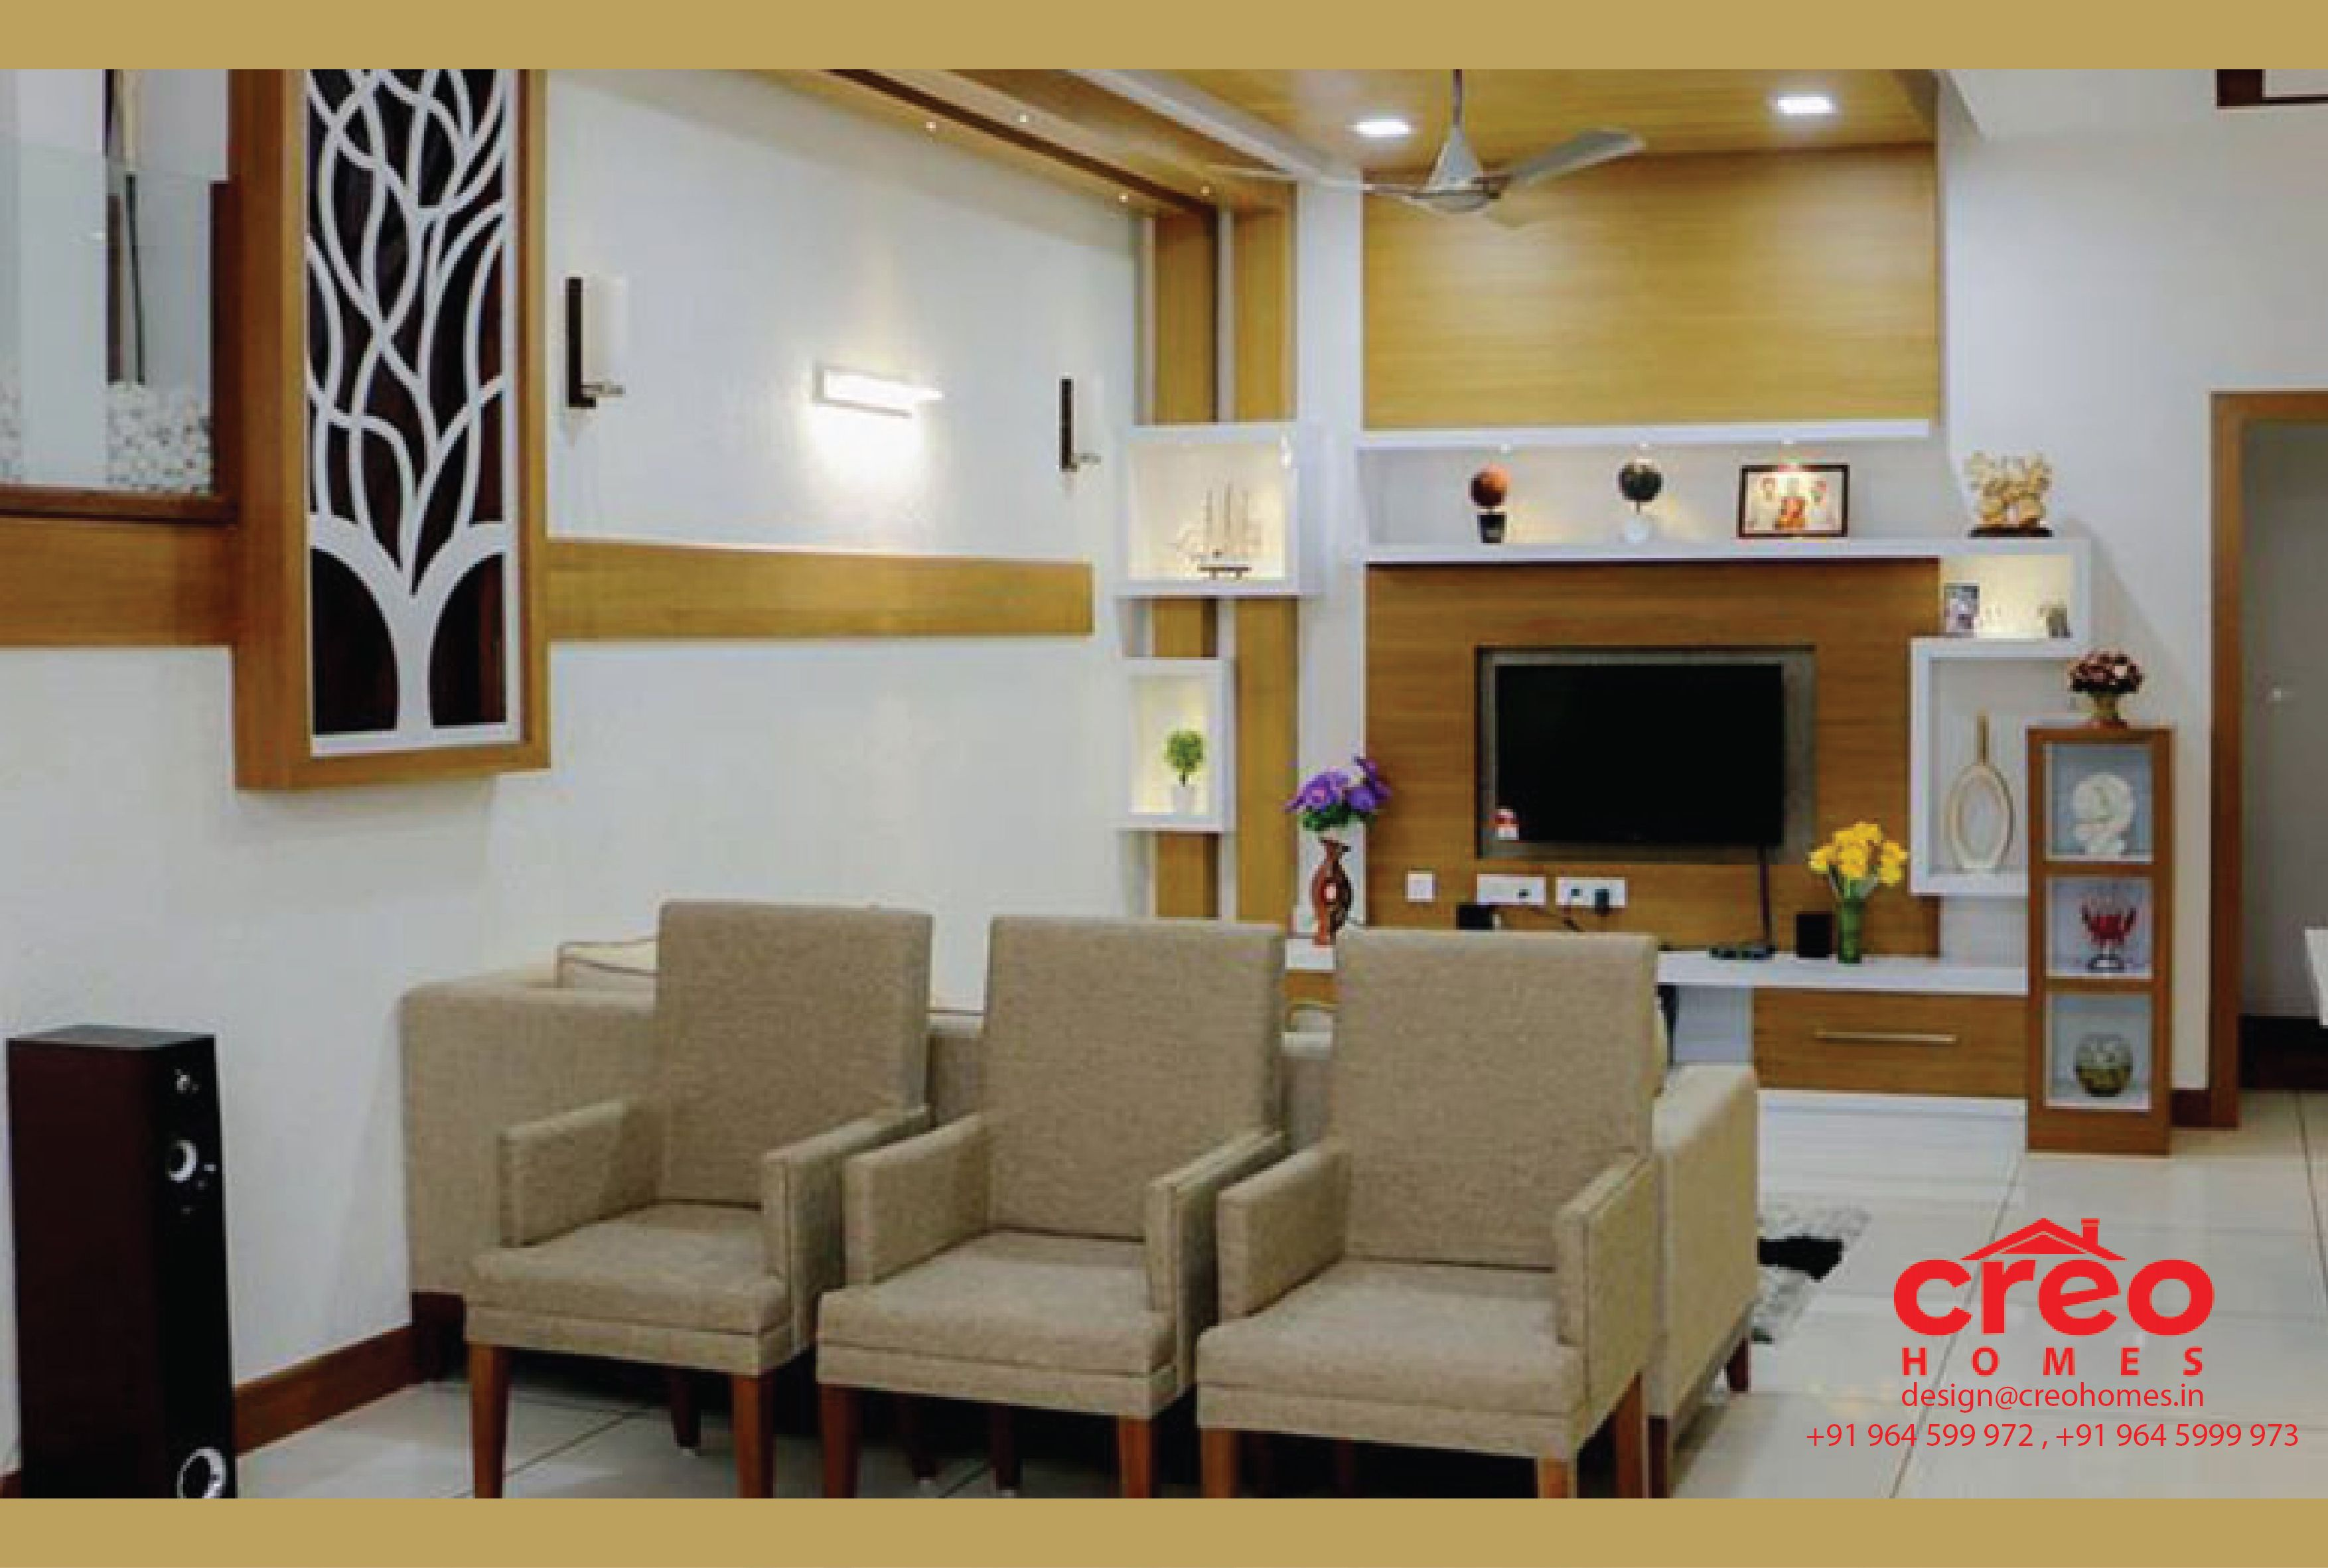 Creo Homes Is The Top Leading Architects In Cochin Creohomes